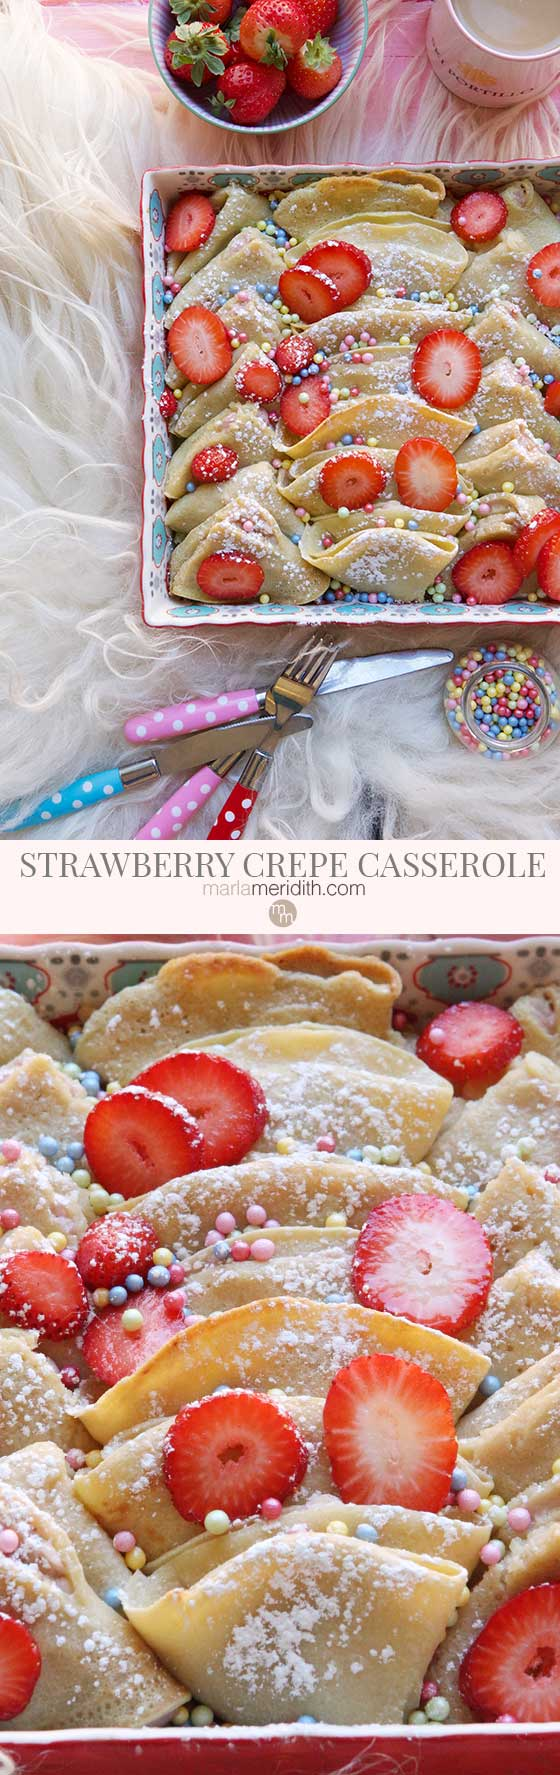 This is quite possibly the BEST breakfast/brunch recipe ever! Show off your cooking skills with this easy Strawberry Cream Cheese Crepe Casserole recipe. MarlaMeridith.com